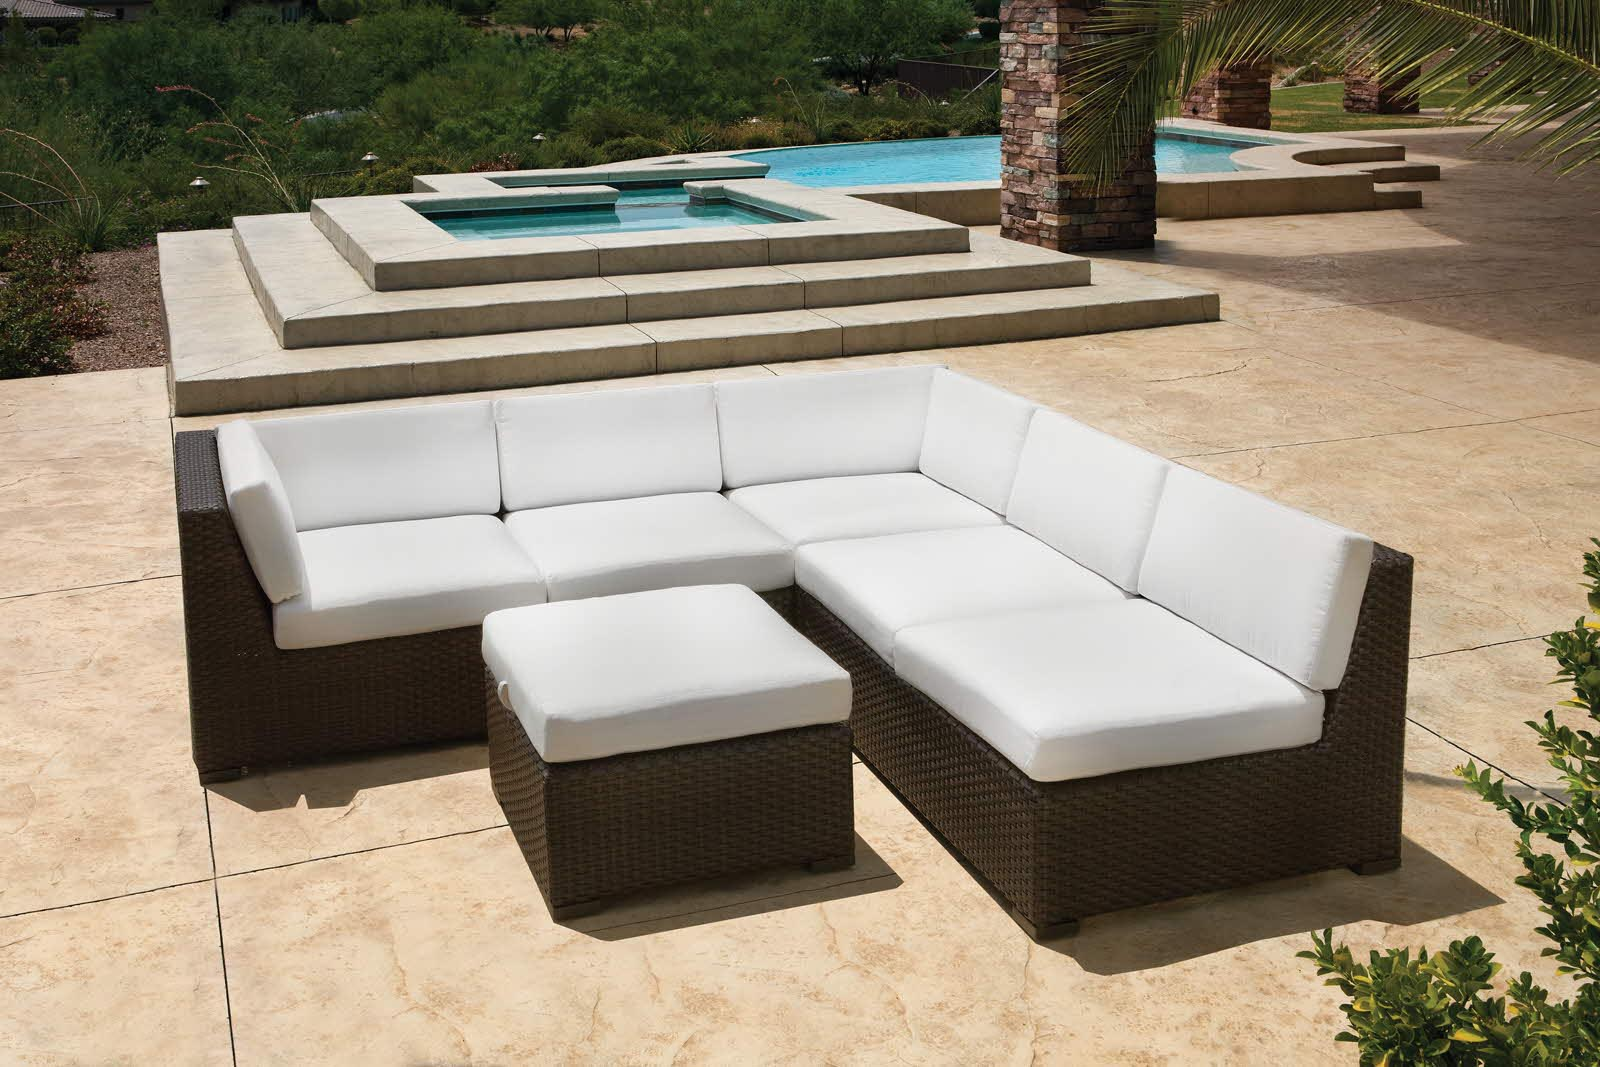 Pool and patio furniture backyard design ideas for Pool and patio furniture